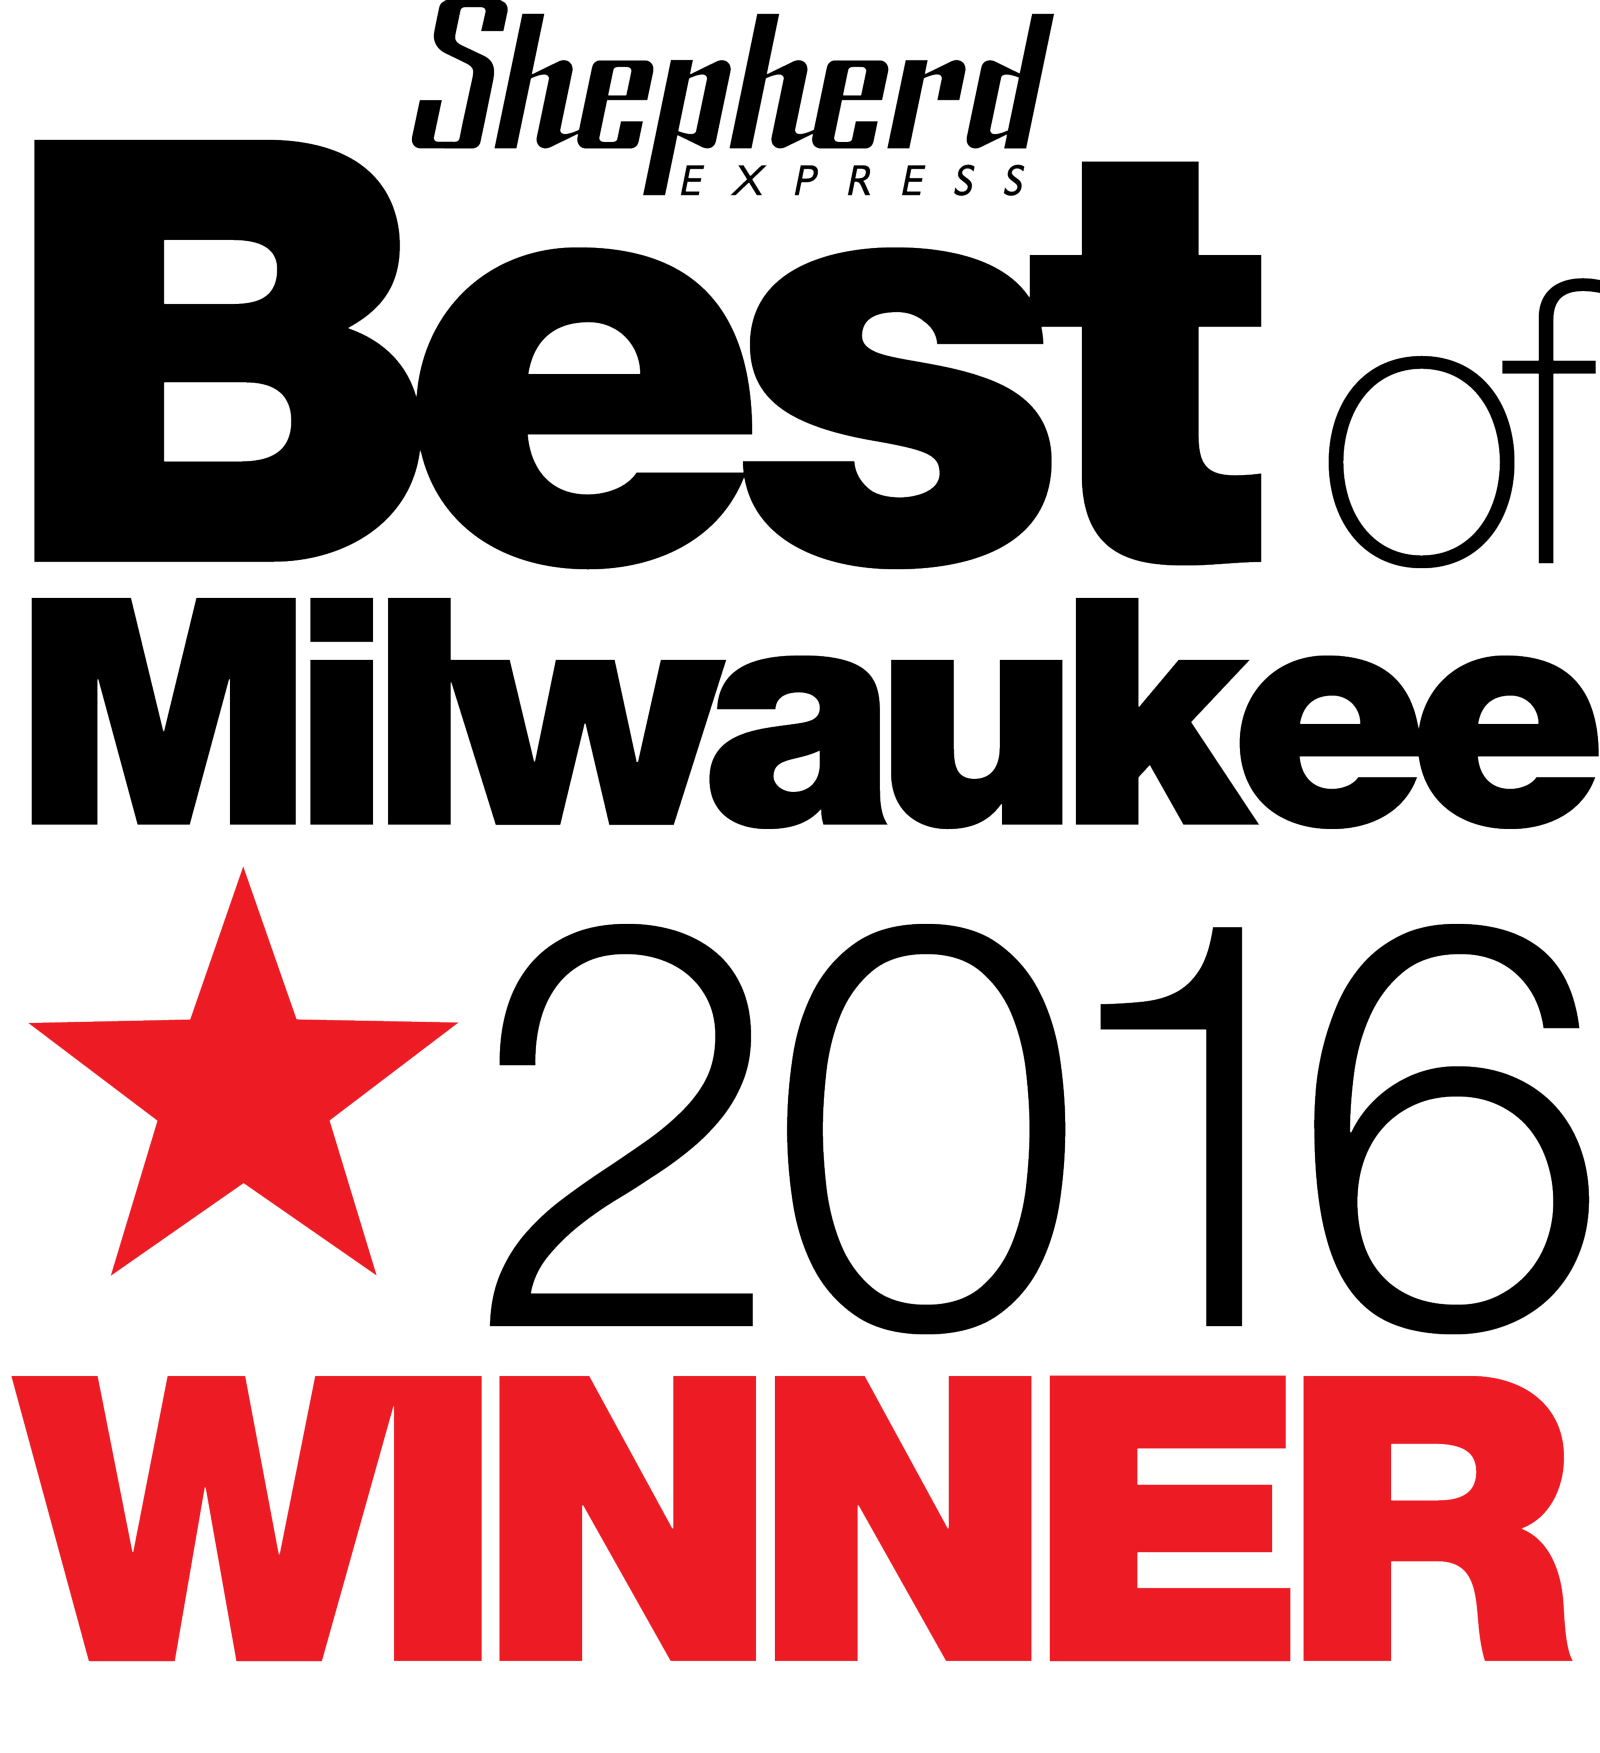 Best of Milwaukee winnder logo